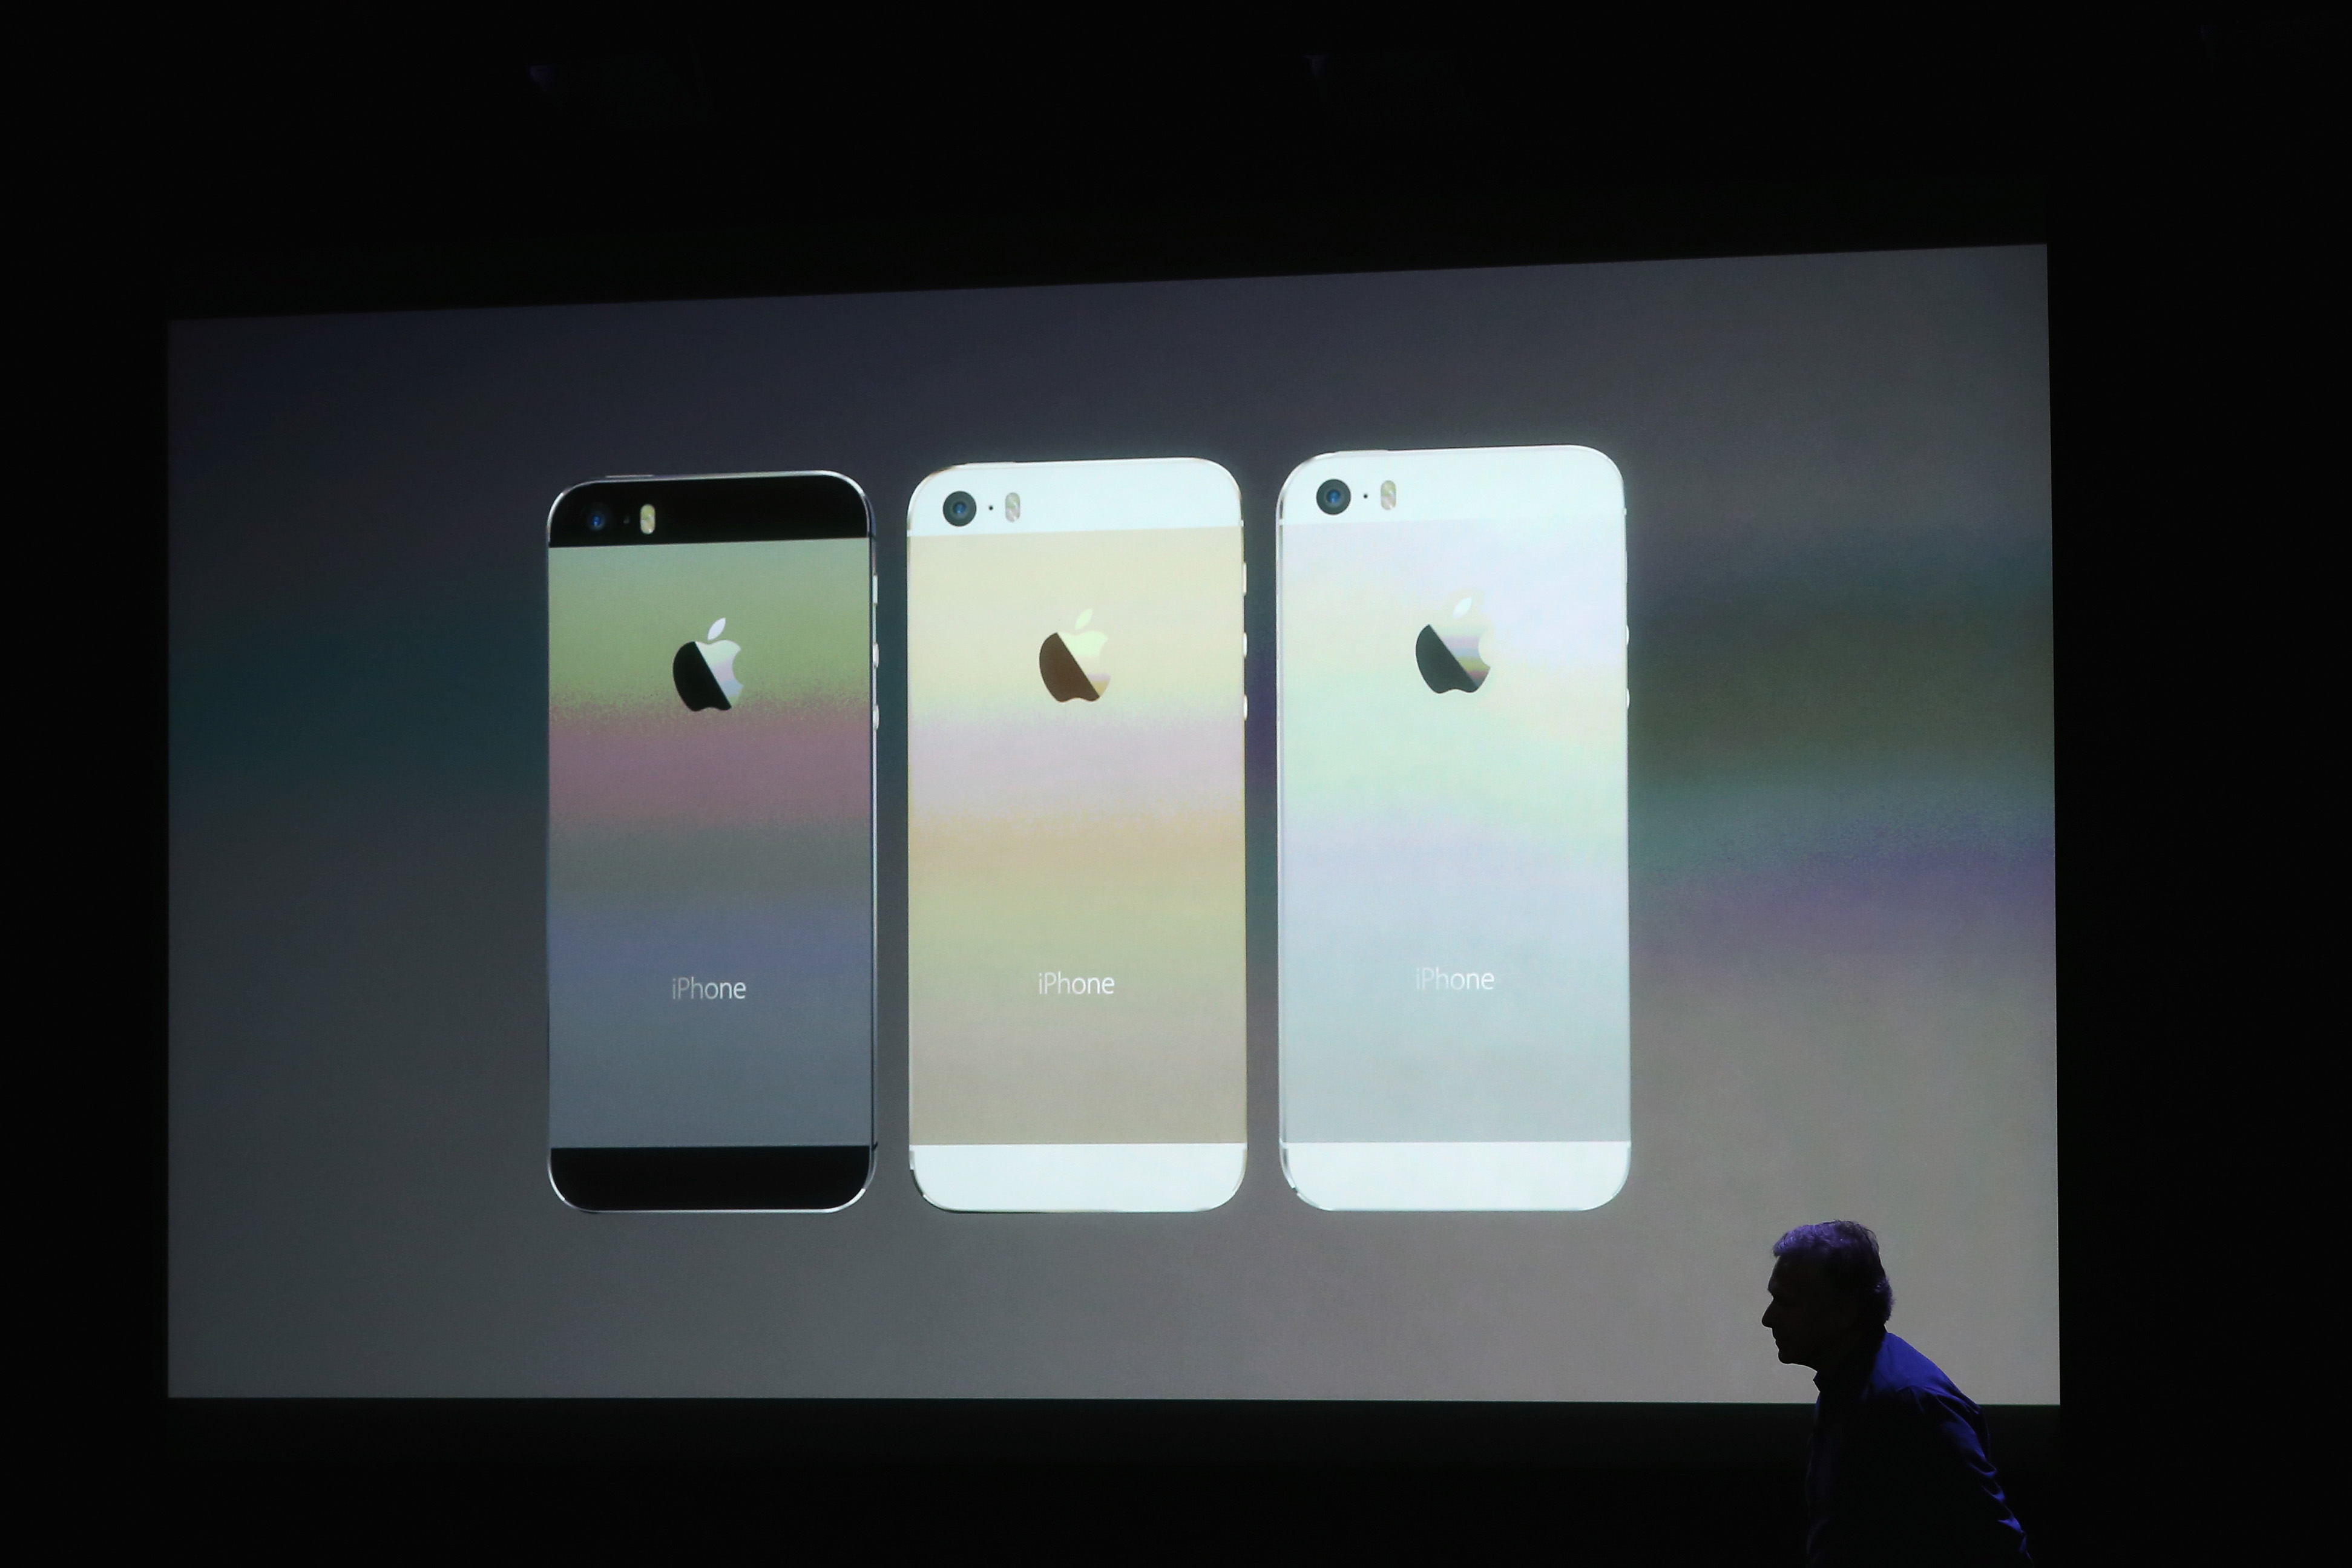 180223809 Apple announces the iPhone 5s